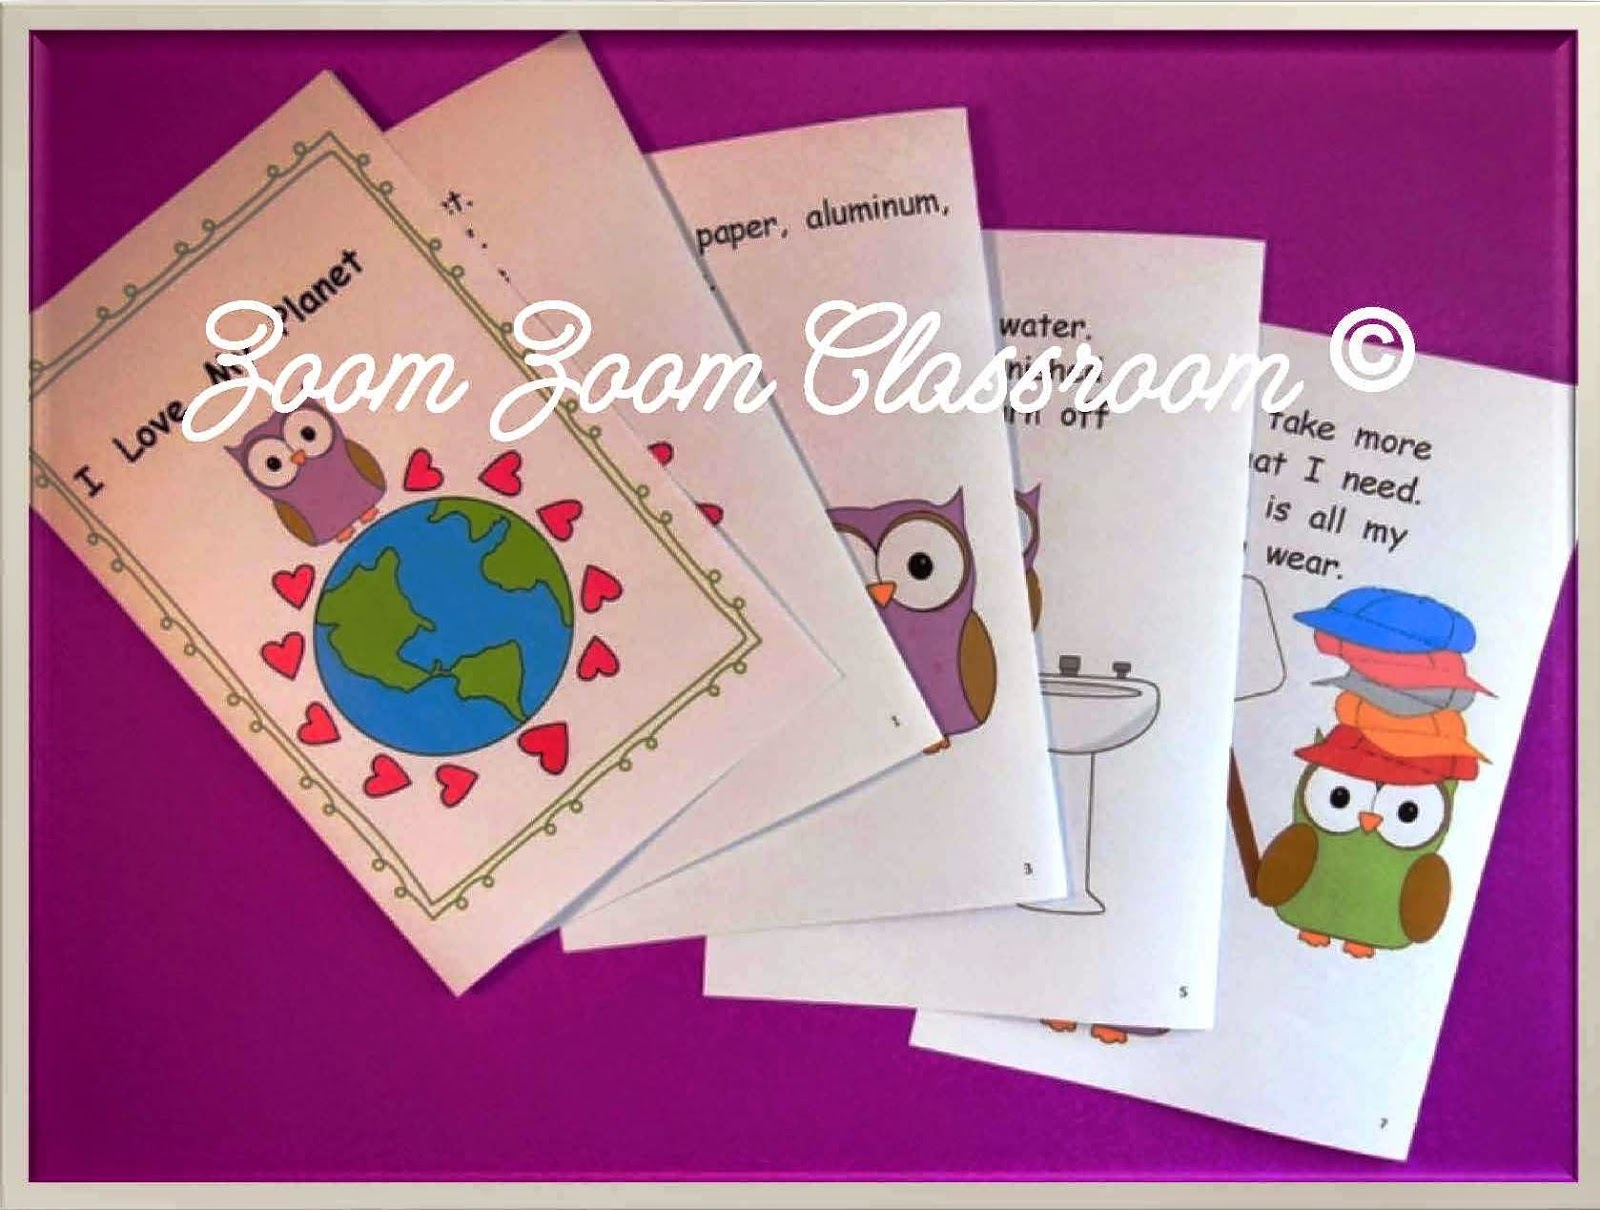 http://zoomzoomclassroom.blogspot.com/2013/04/earth-day-primary-free-teaching-resource.html